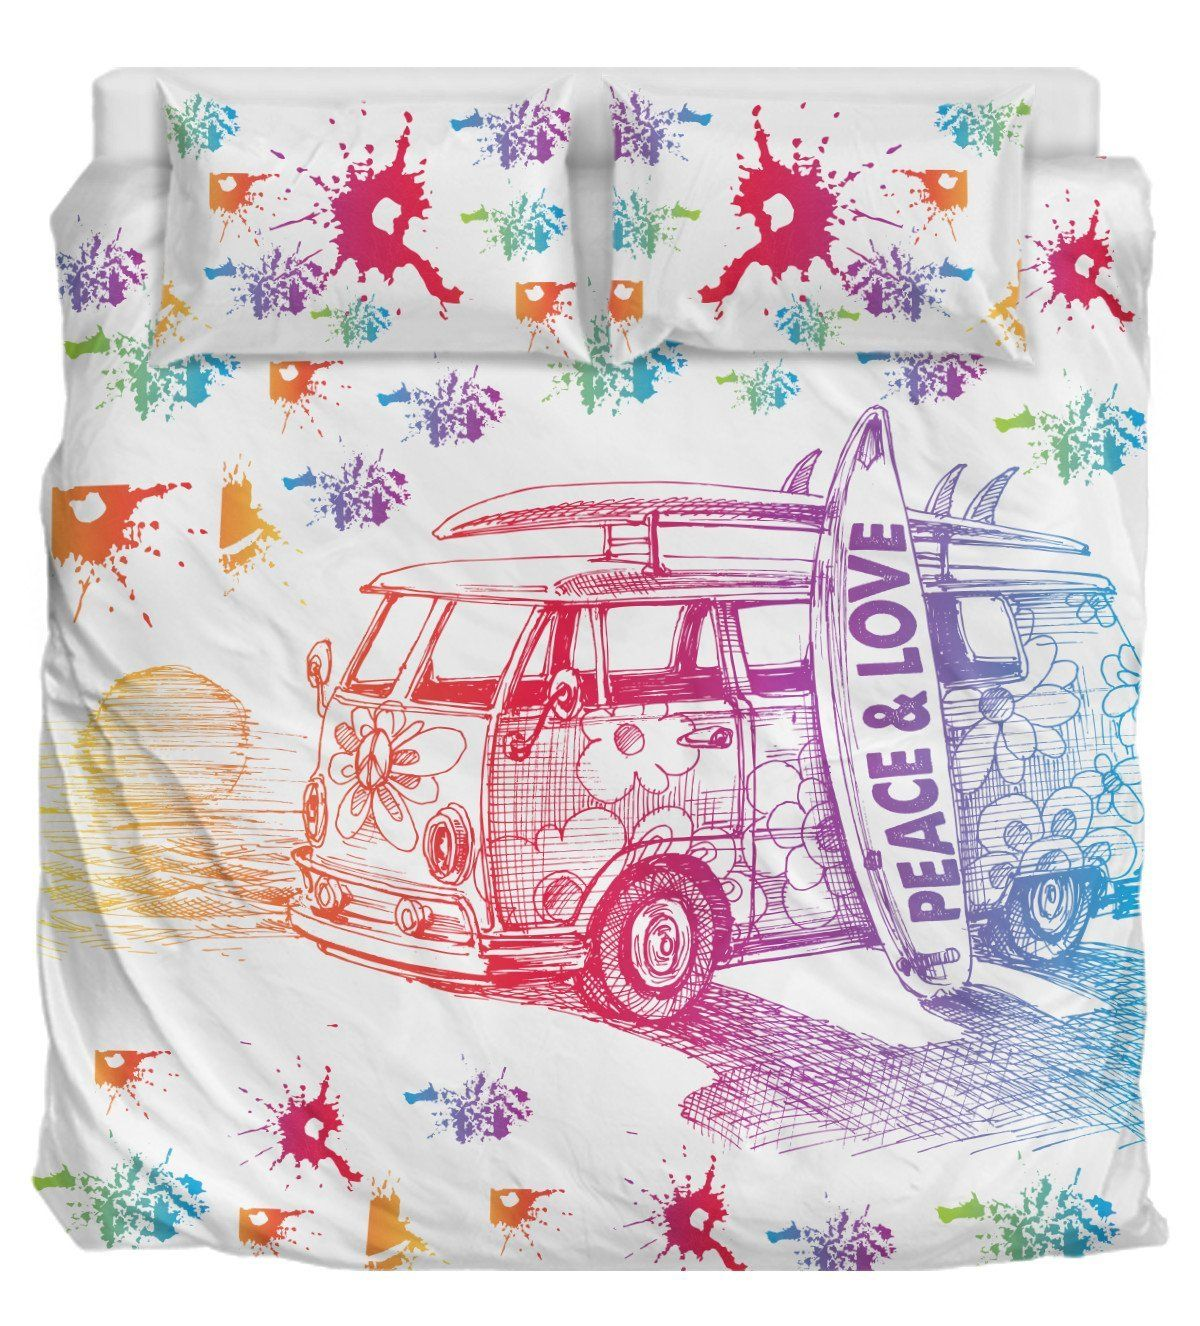 Hippie Peace And Love Hippie bedding, Peace and love